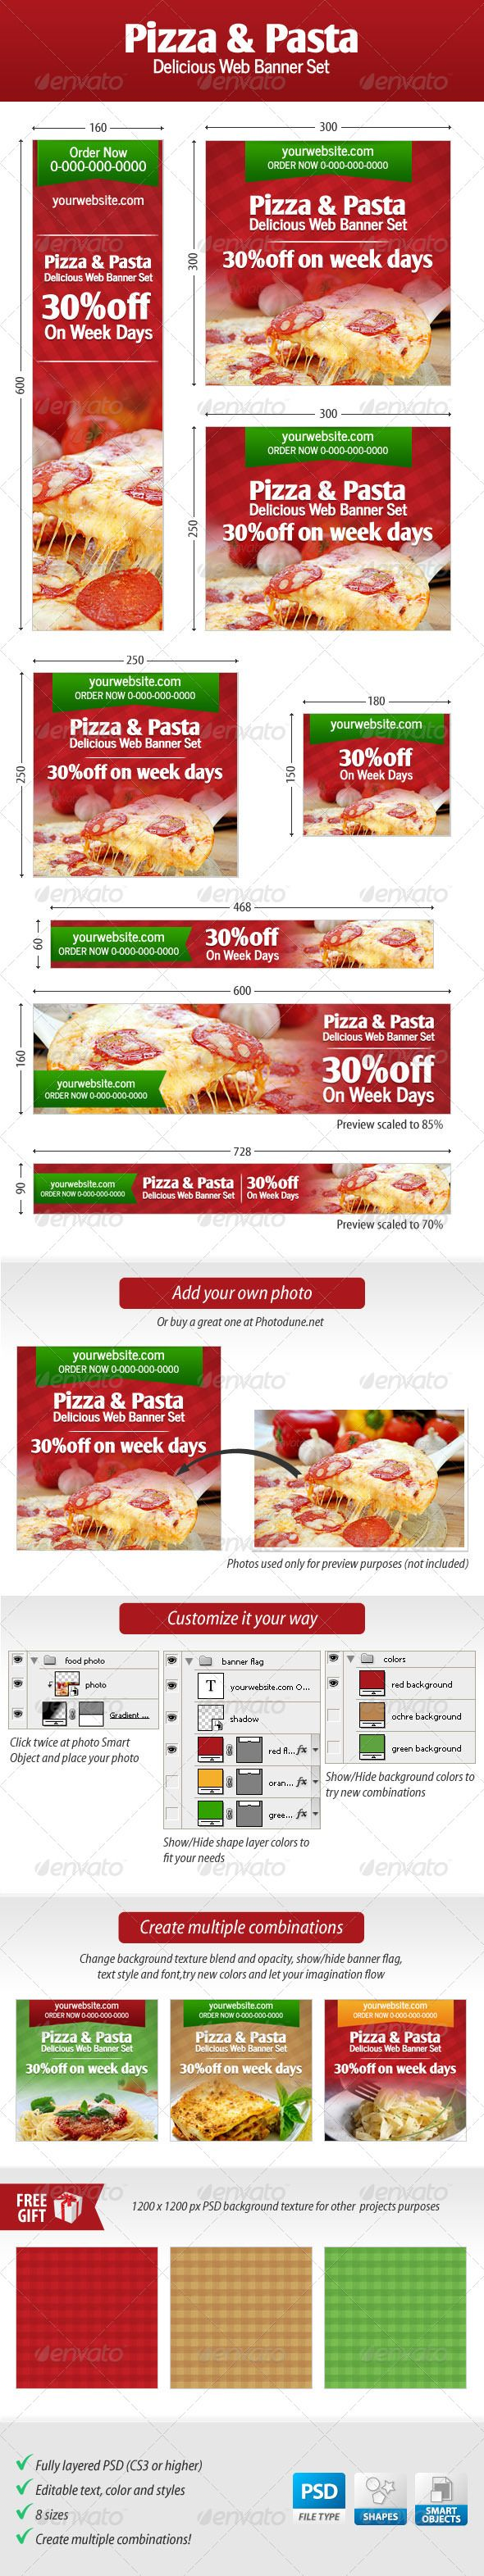 Pizza and Pasta Web Banner Set Template PSD | Buy and Download: http://graphicriver.net/item/pizza-and-pasta-web-banner-set/4529248?WT.ac=category_thumb&WT.z_author=stoat&ref=ksioks